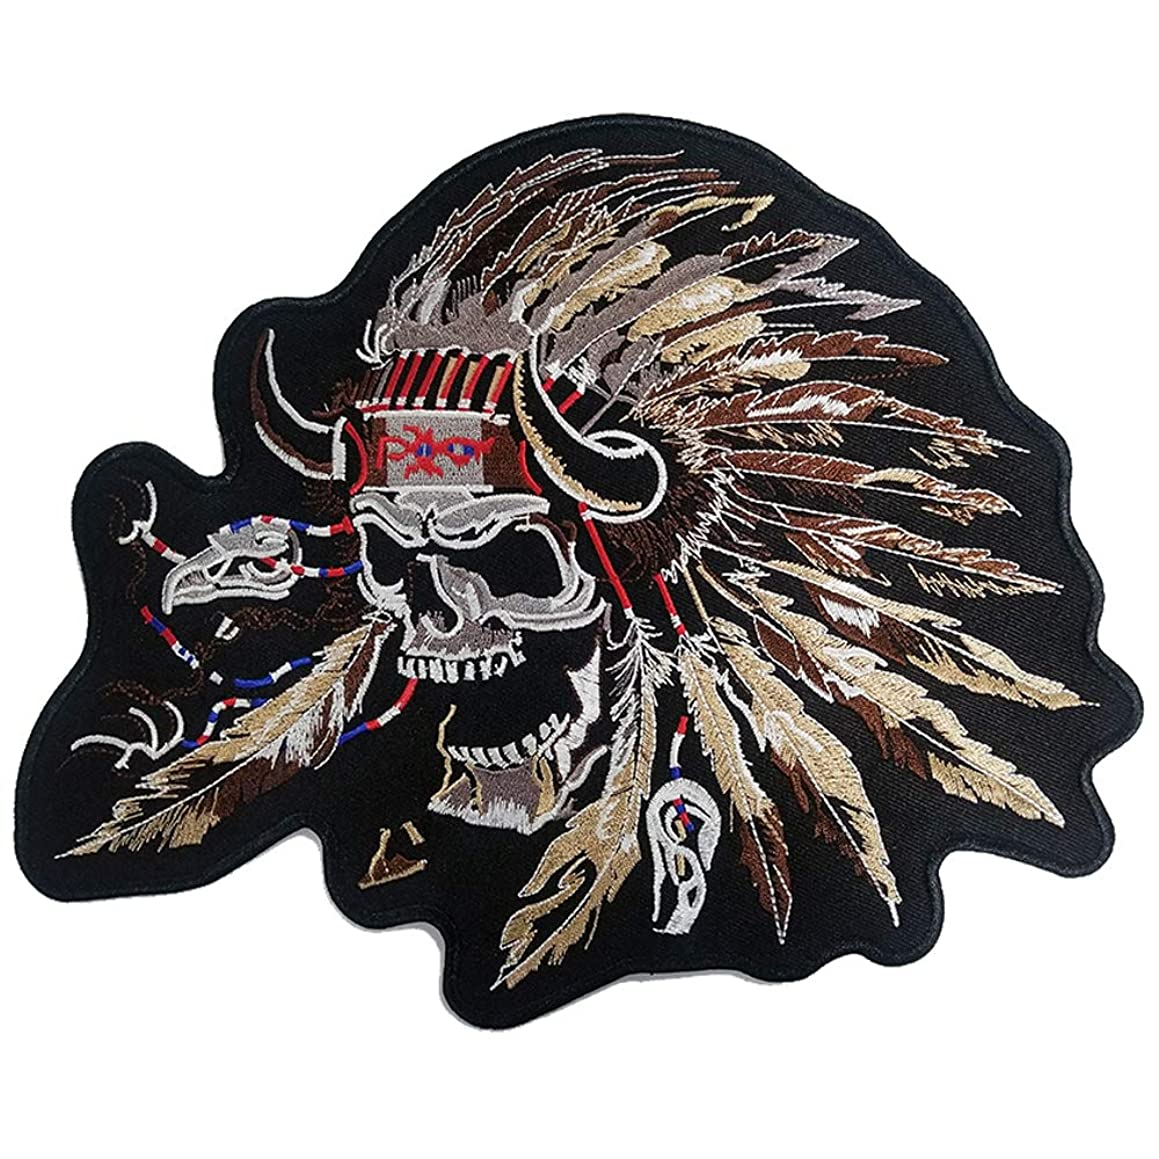 Indian Lady Rider Skull Patch Custom New Embroidery Iron On Patches for Clothing Jacket Hippie t-Shirt (25CM)